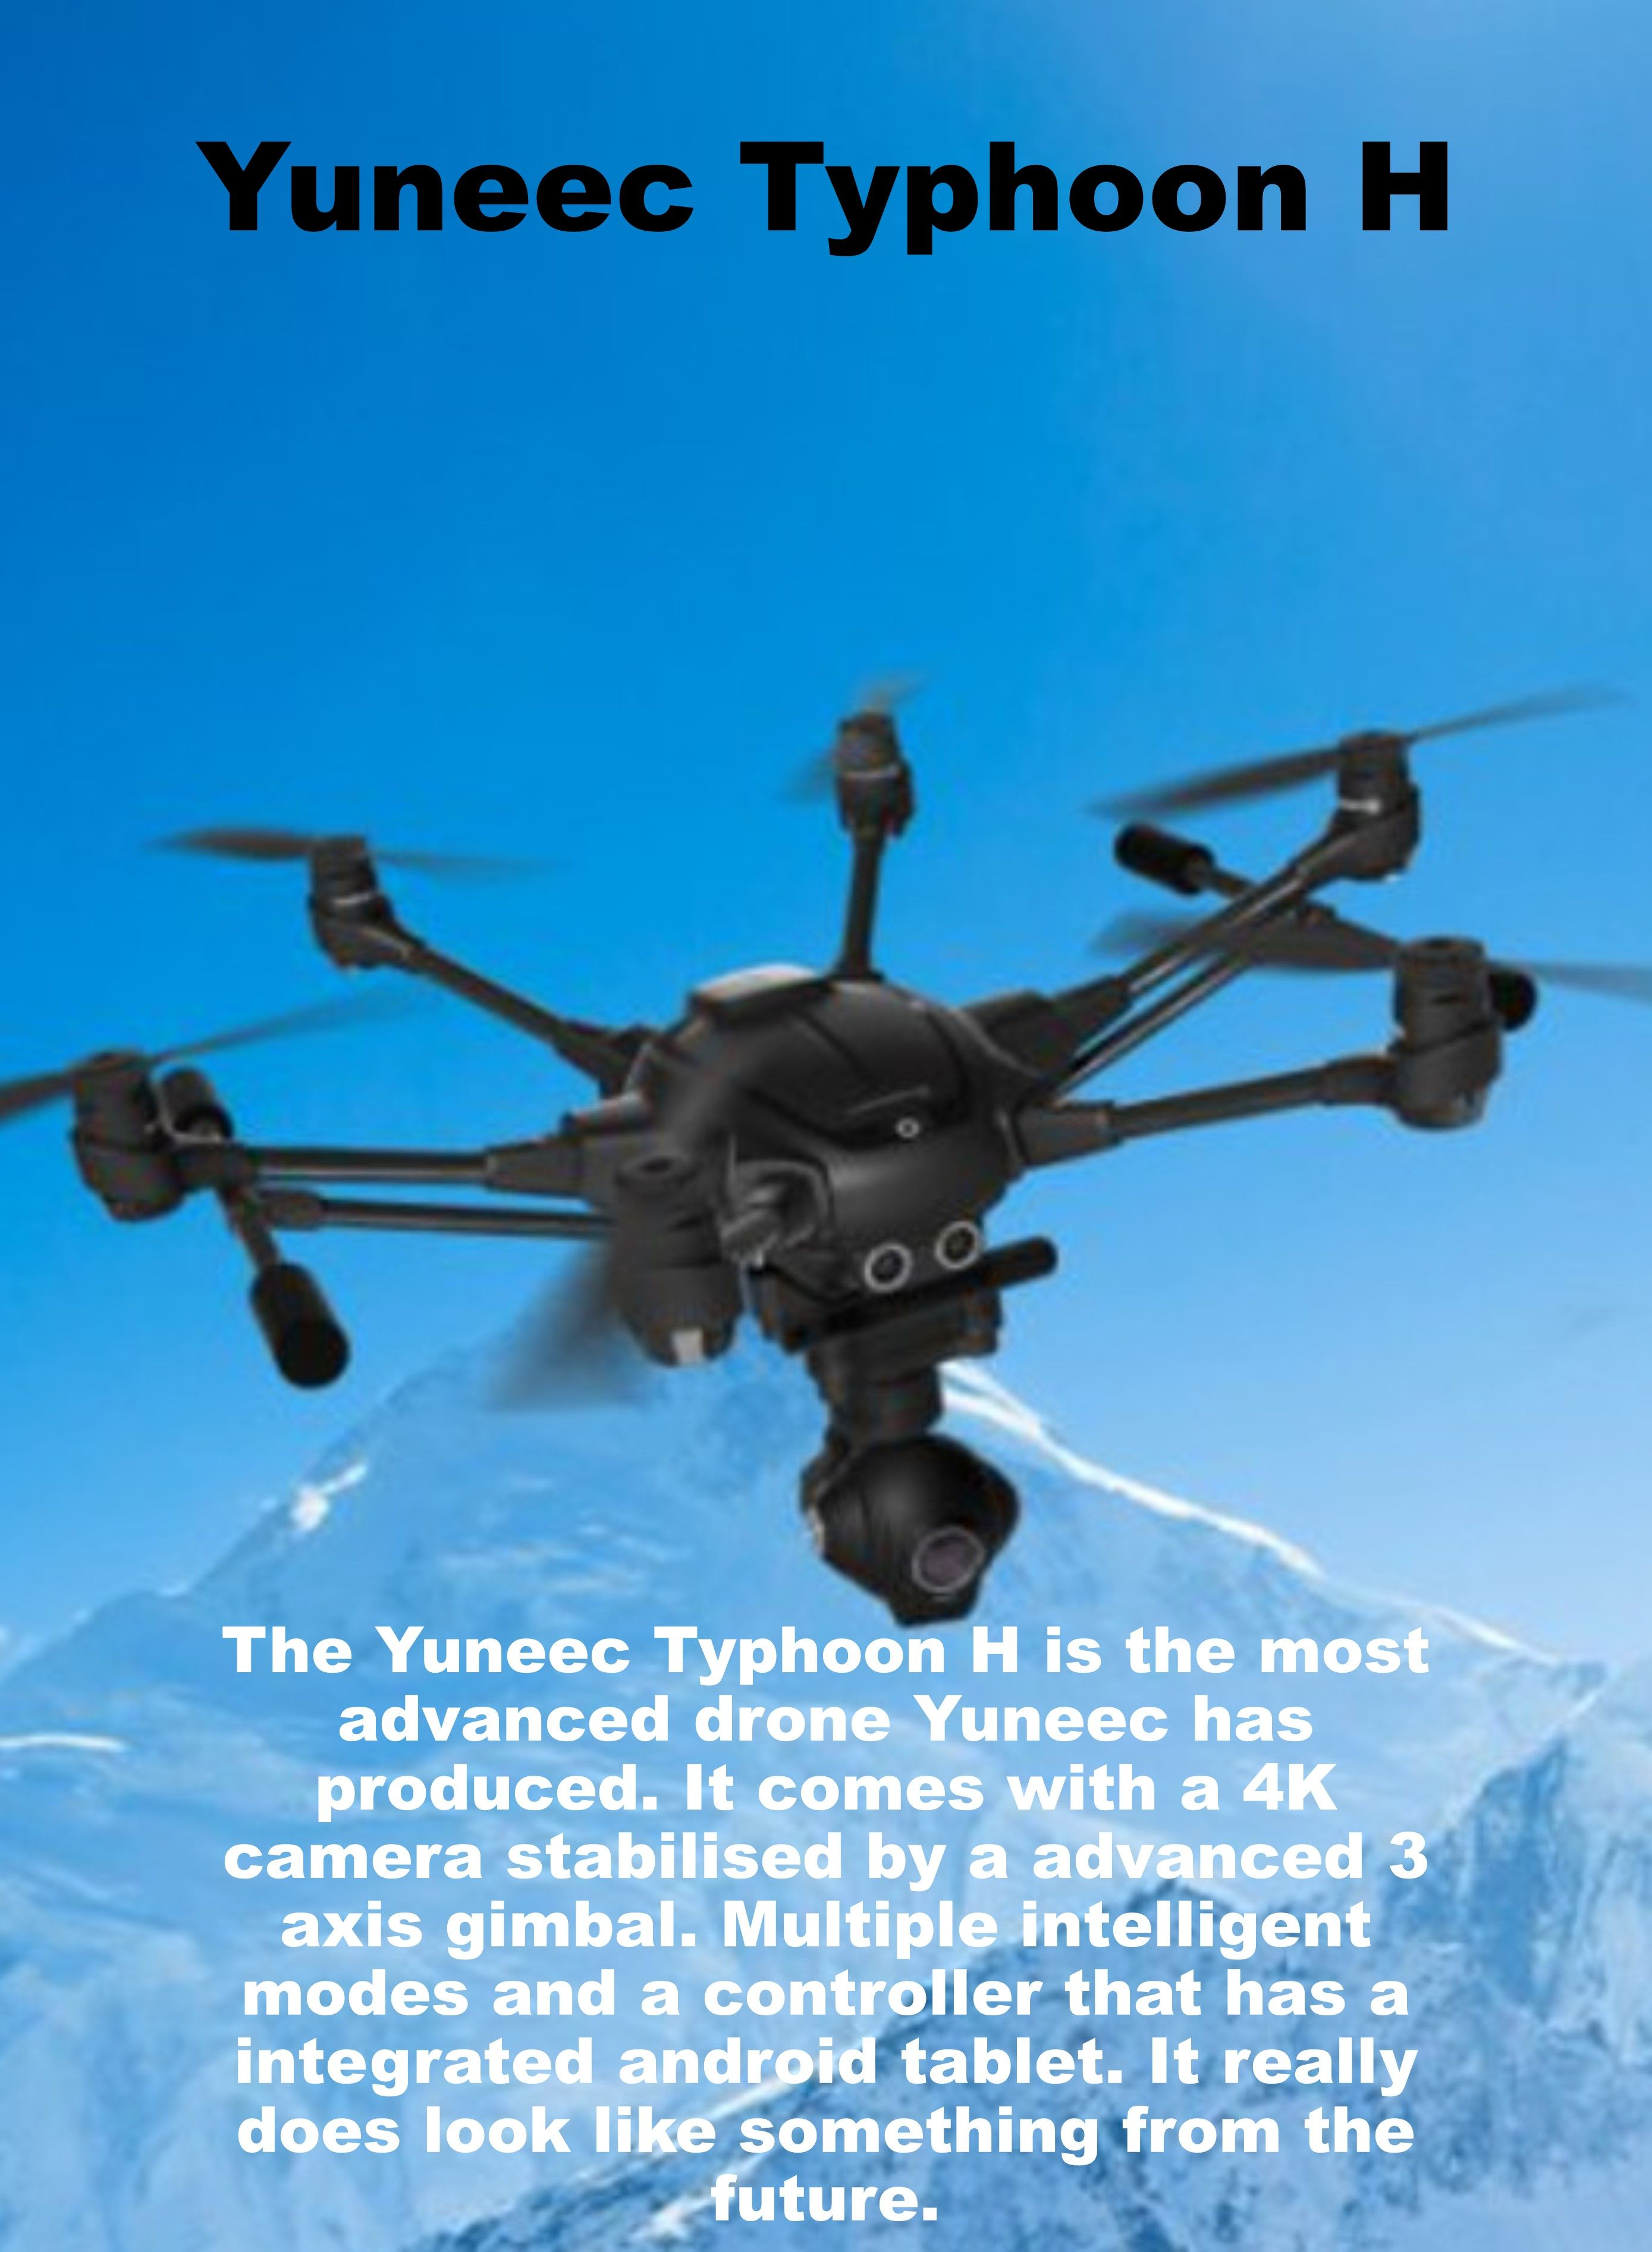 The Most Advanced Drone In Yuneecs Range Comes With A 4k 12mp Camera And Can Shoot Multiple Intelligent Modes Great For Photography